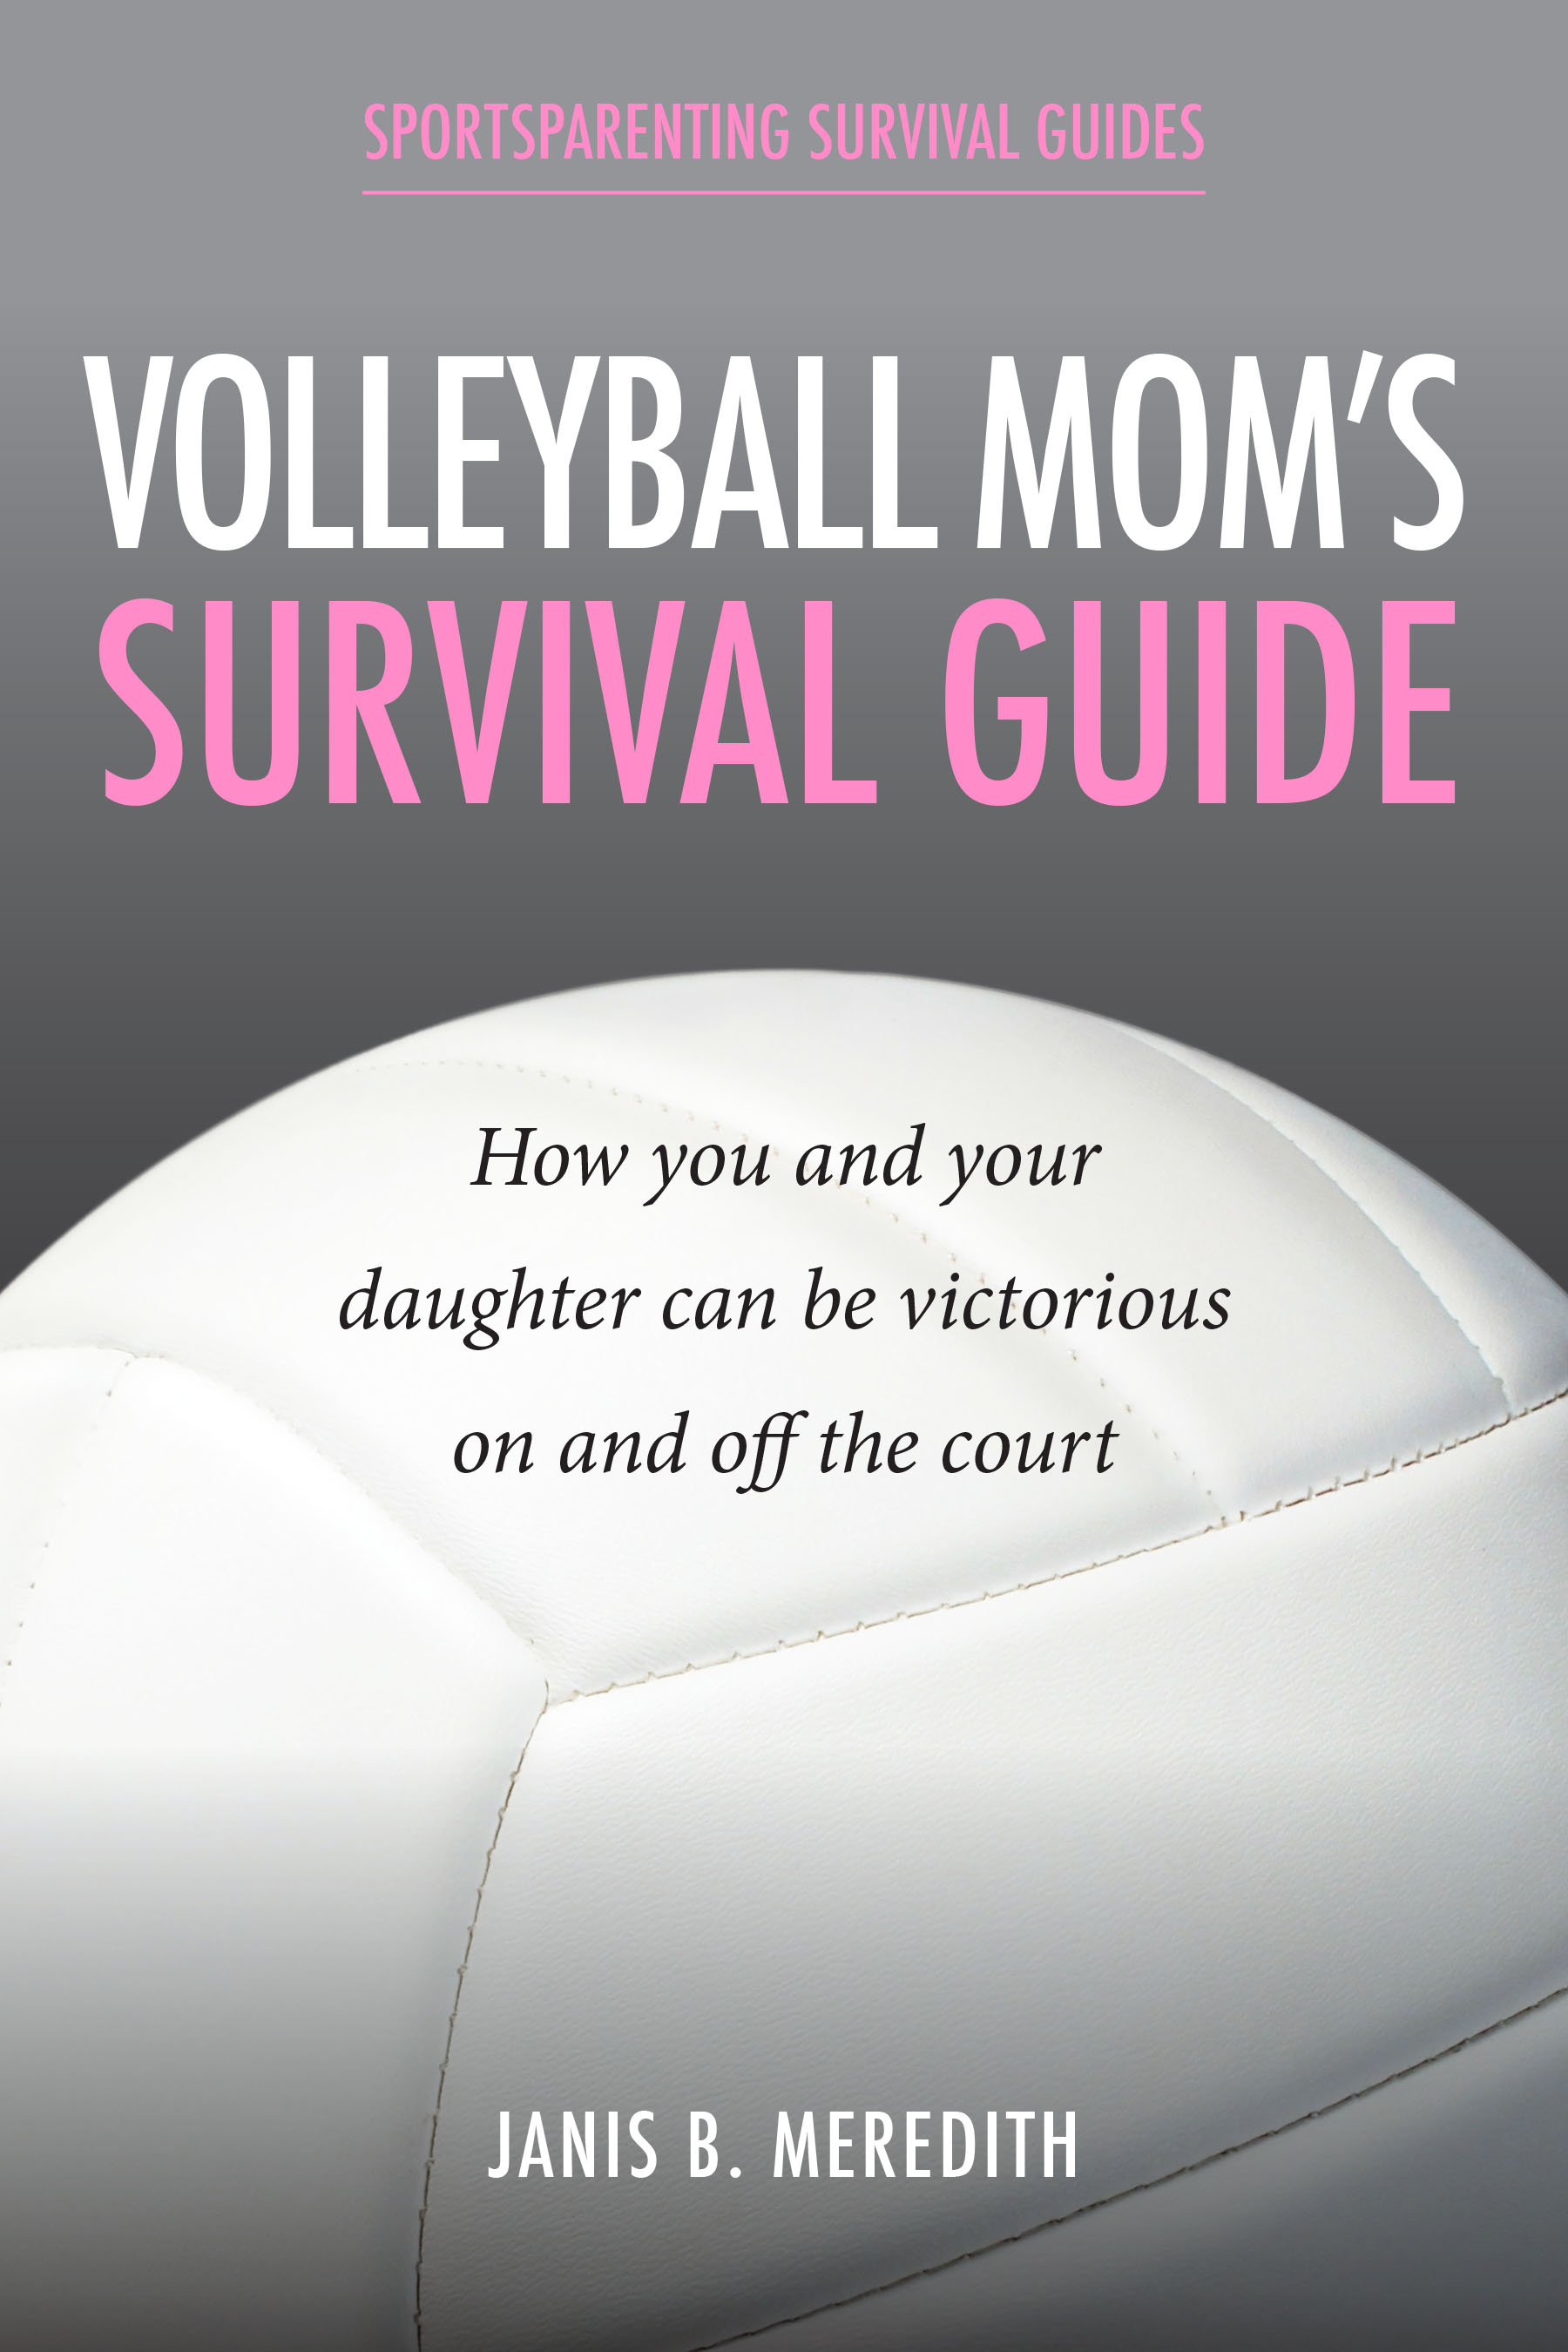 Volleyball Mom's Survival Guide